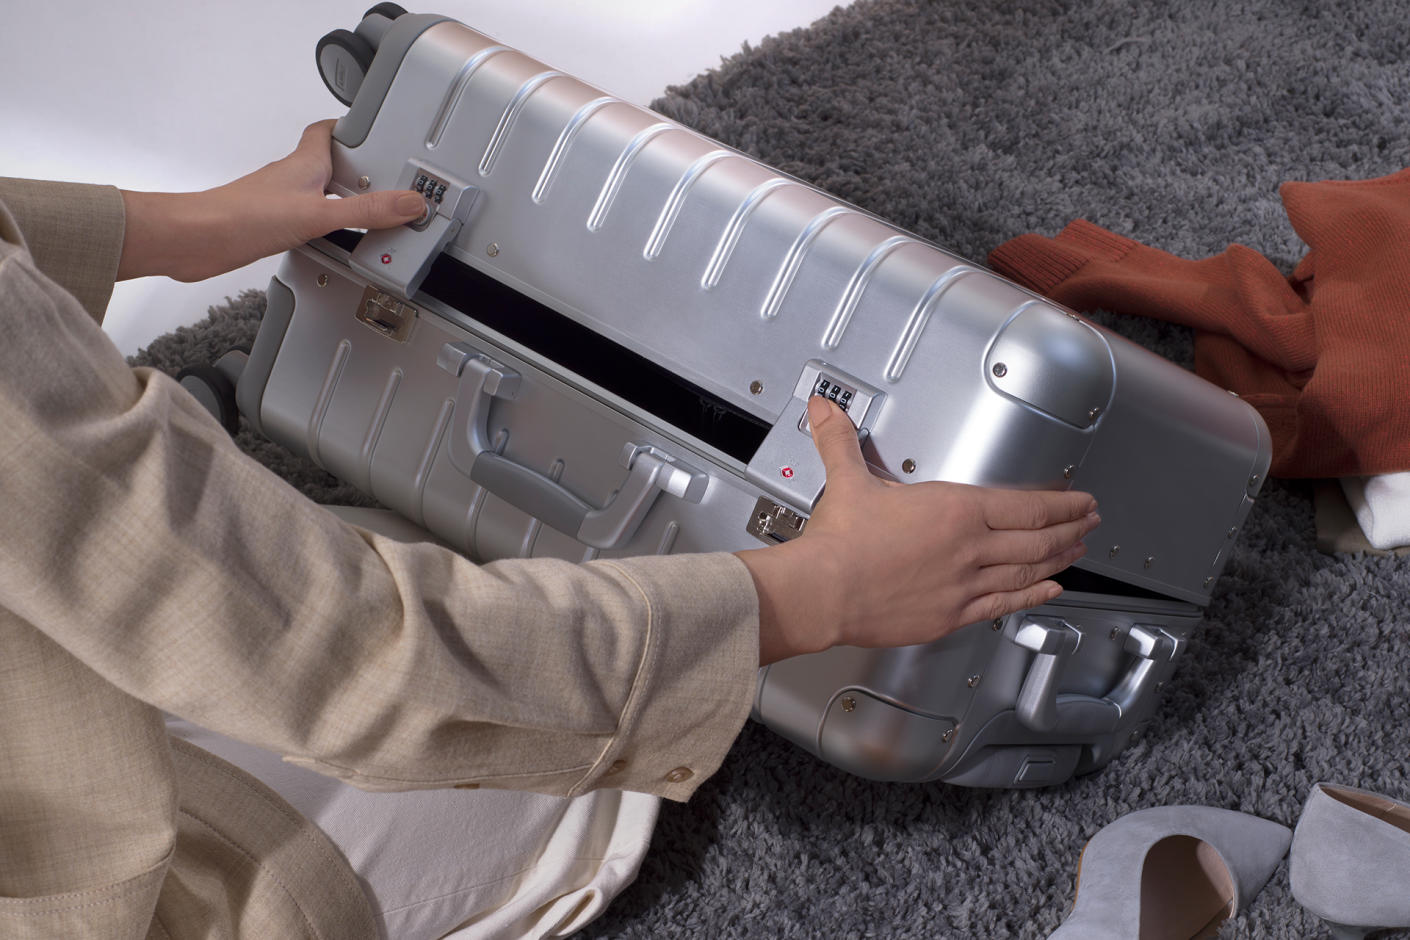 The Aluminum Bigger Carry On on its side showcasing TSA  approved combination locks and no zippers.